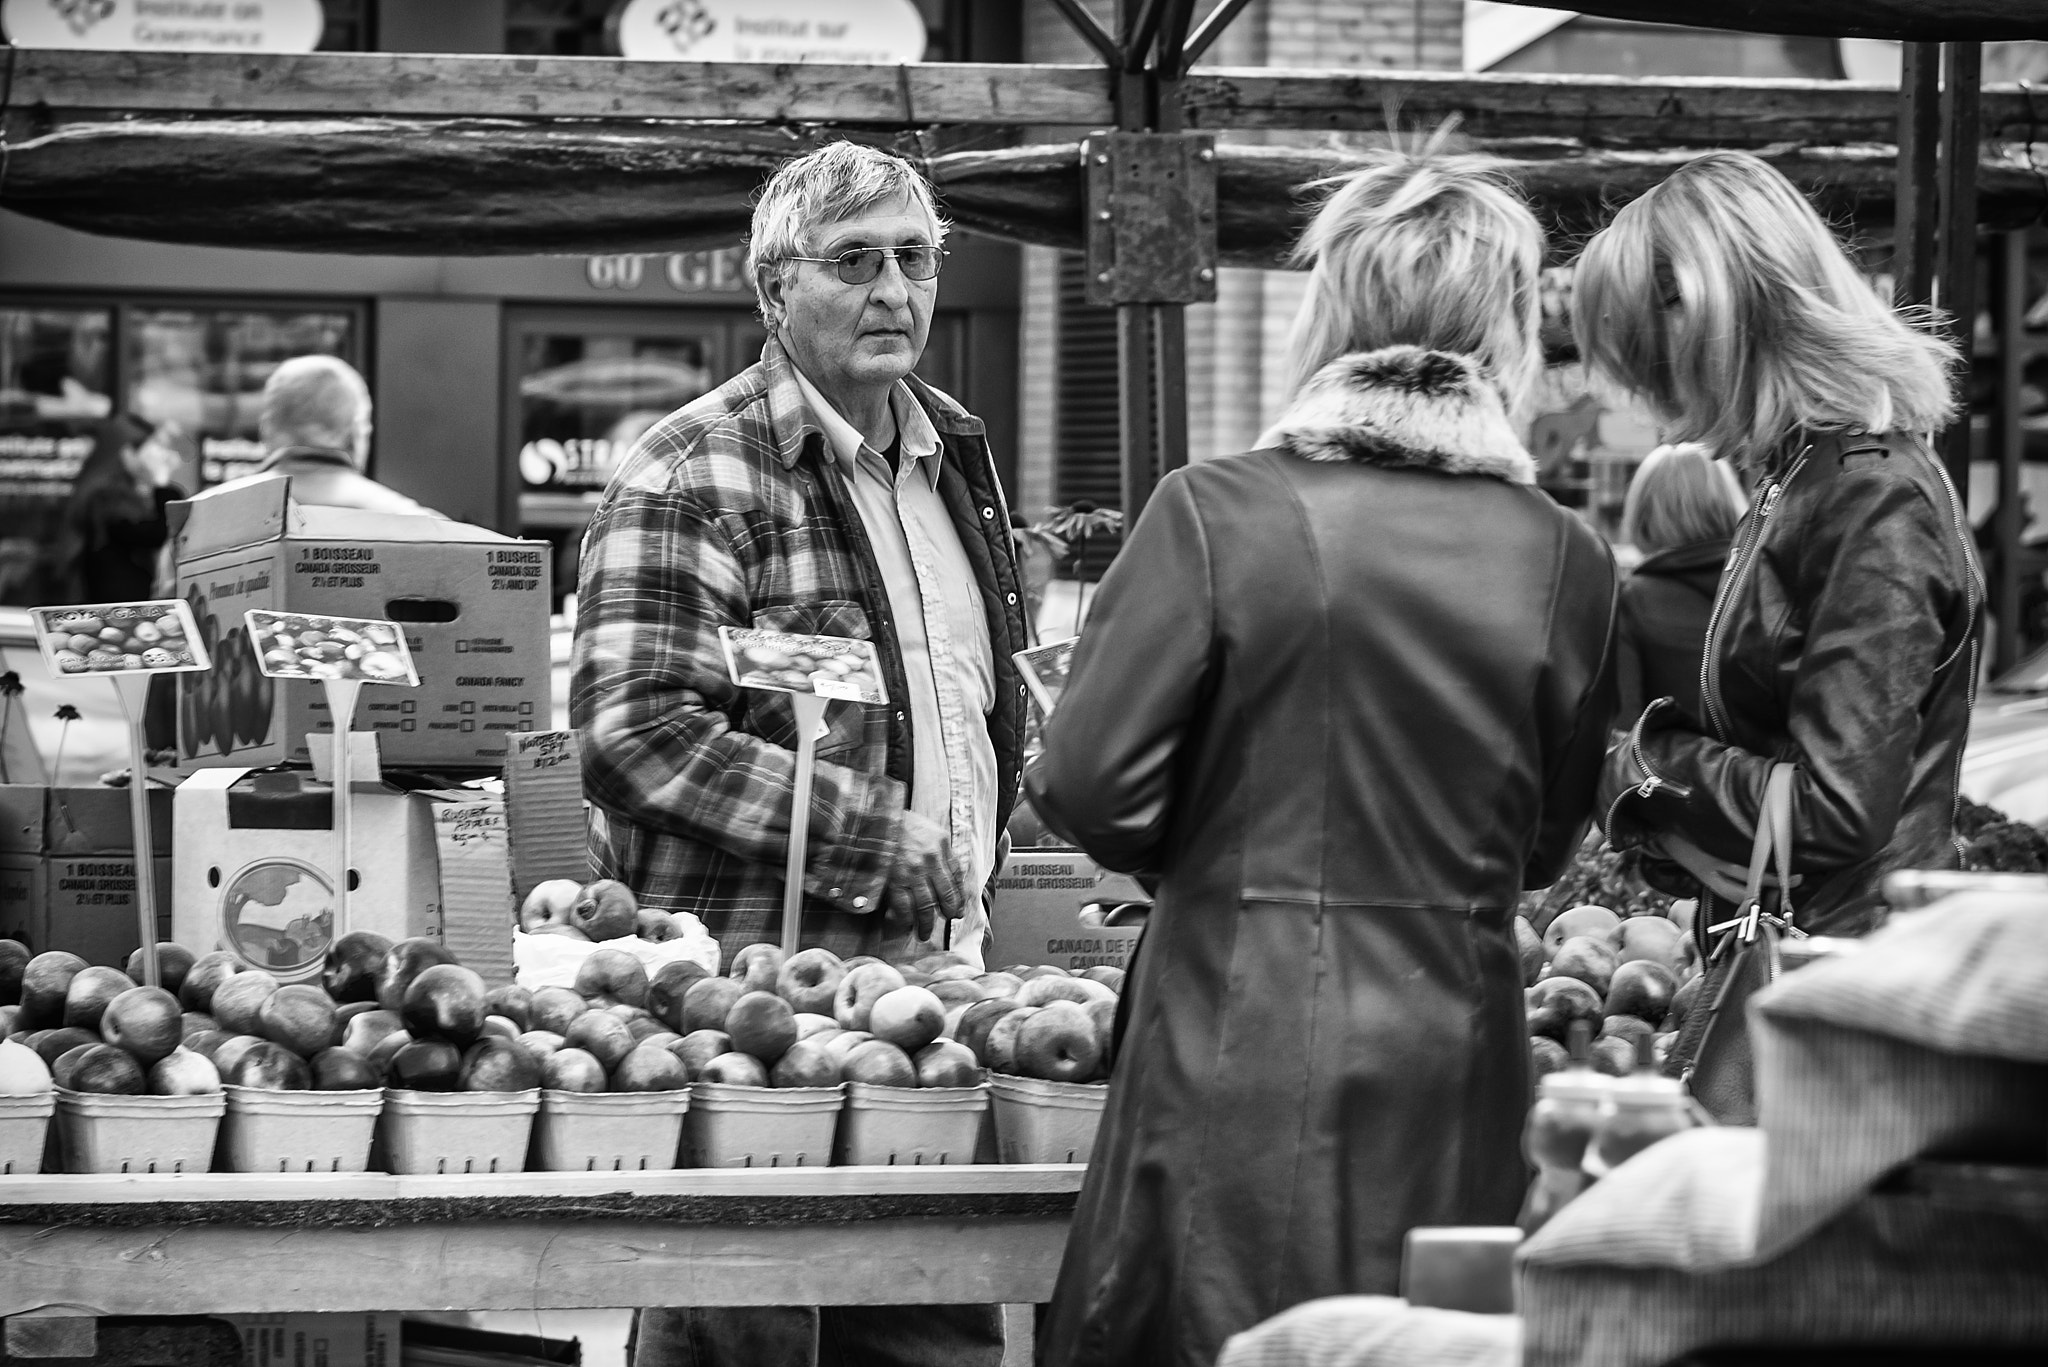 Photograph The Apple Seller by Philip Rice on 500px